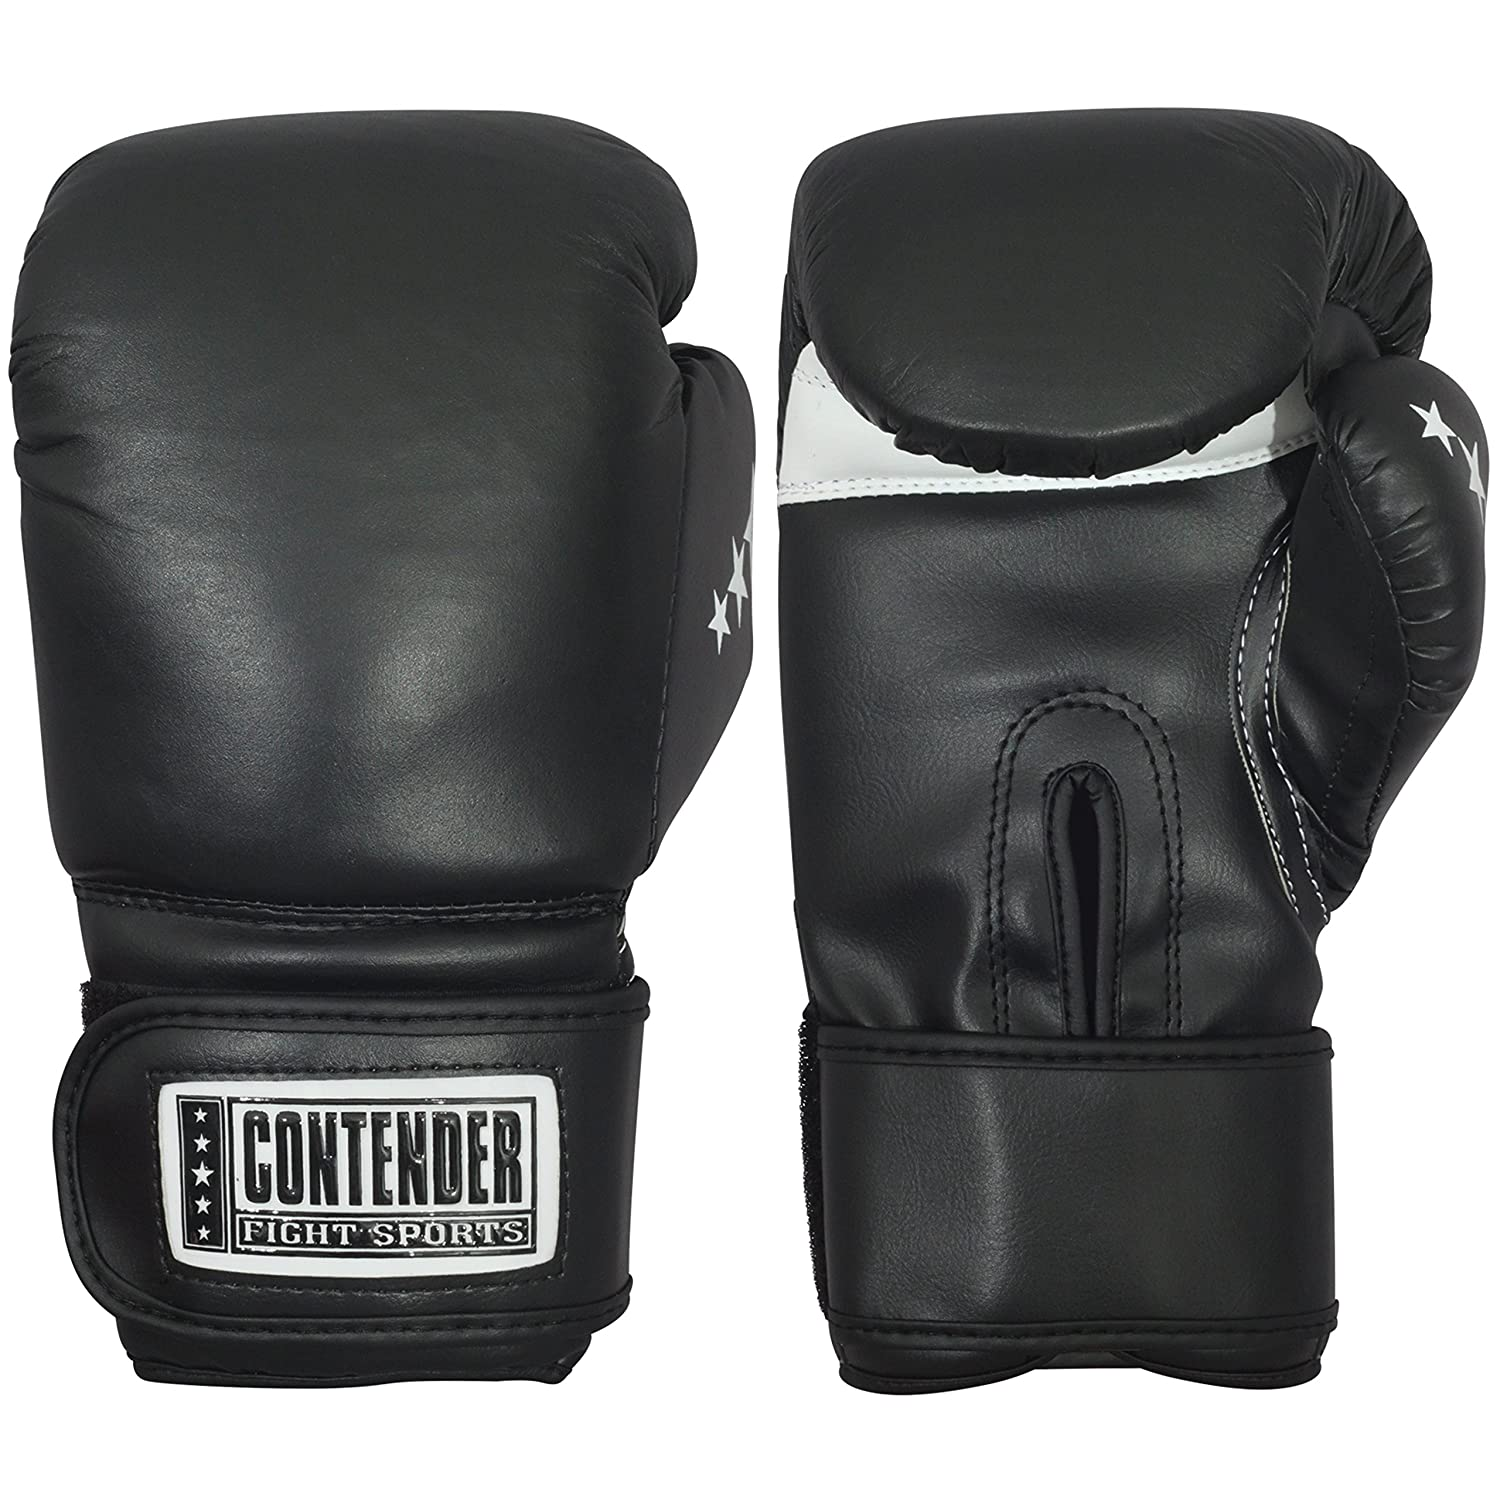 Contender Fight Sports Leather Boxing Bag Gloves CSBG -P